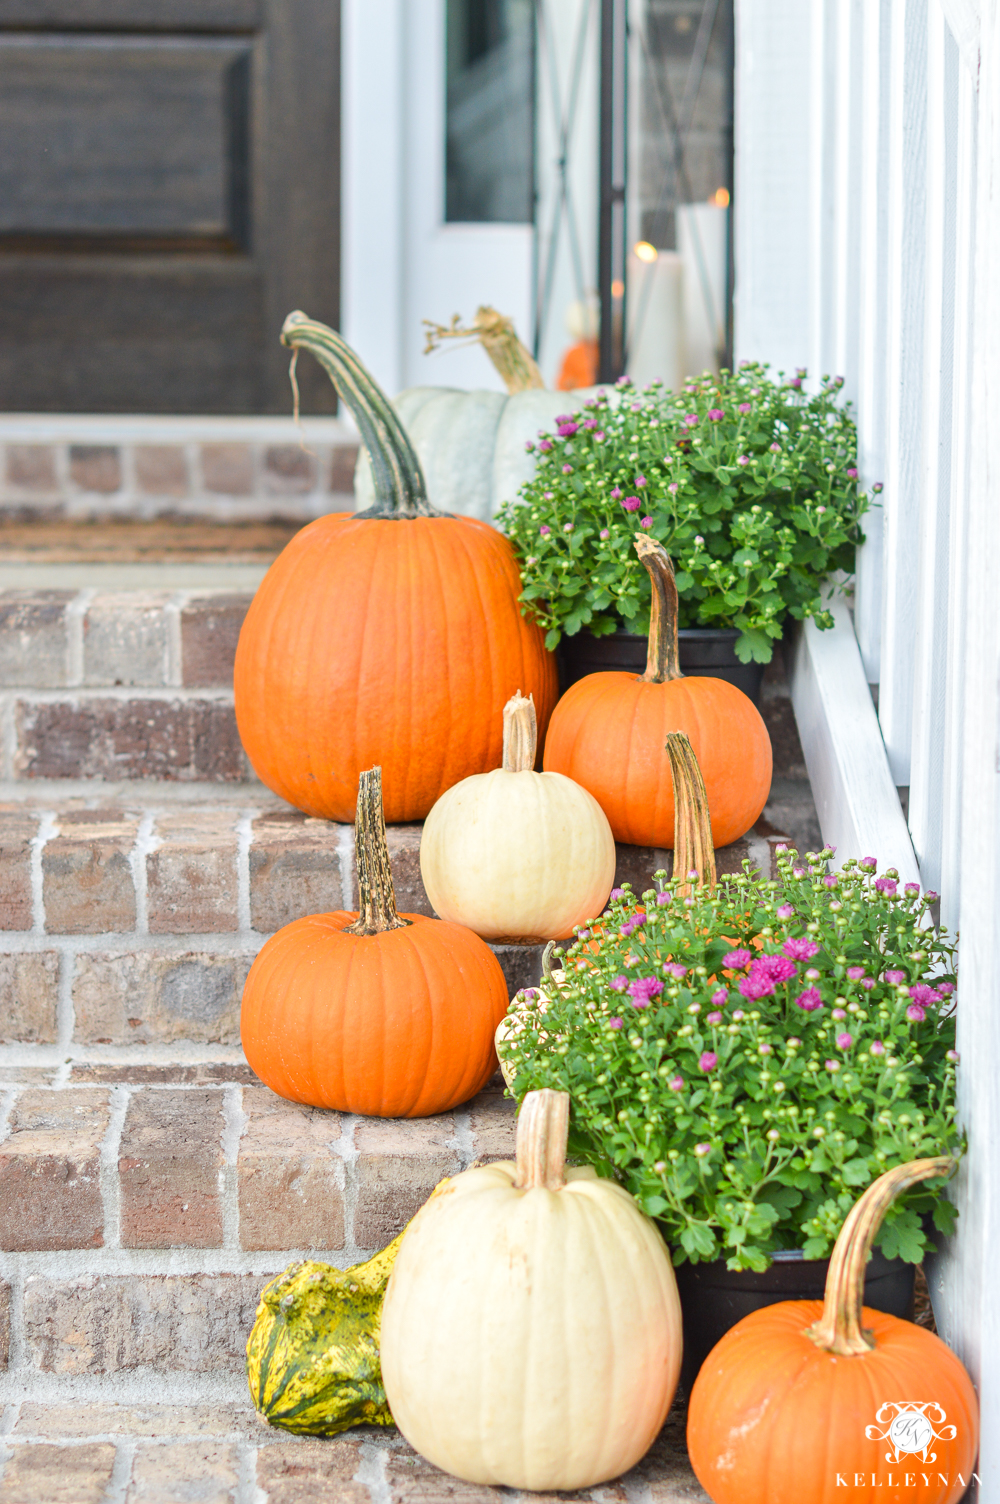 Fall front porch decor with pumpkins and purple mums